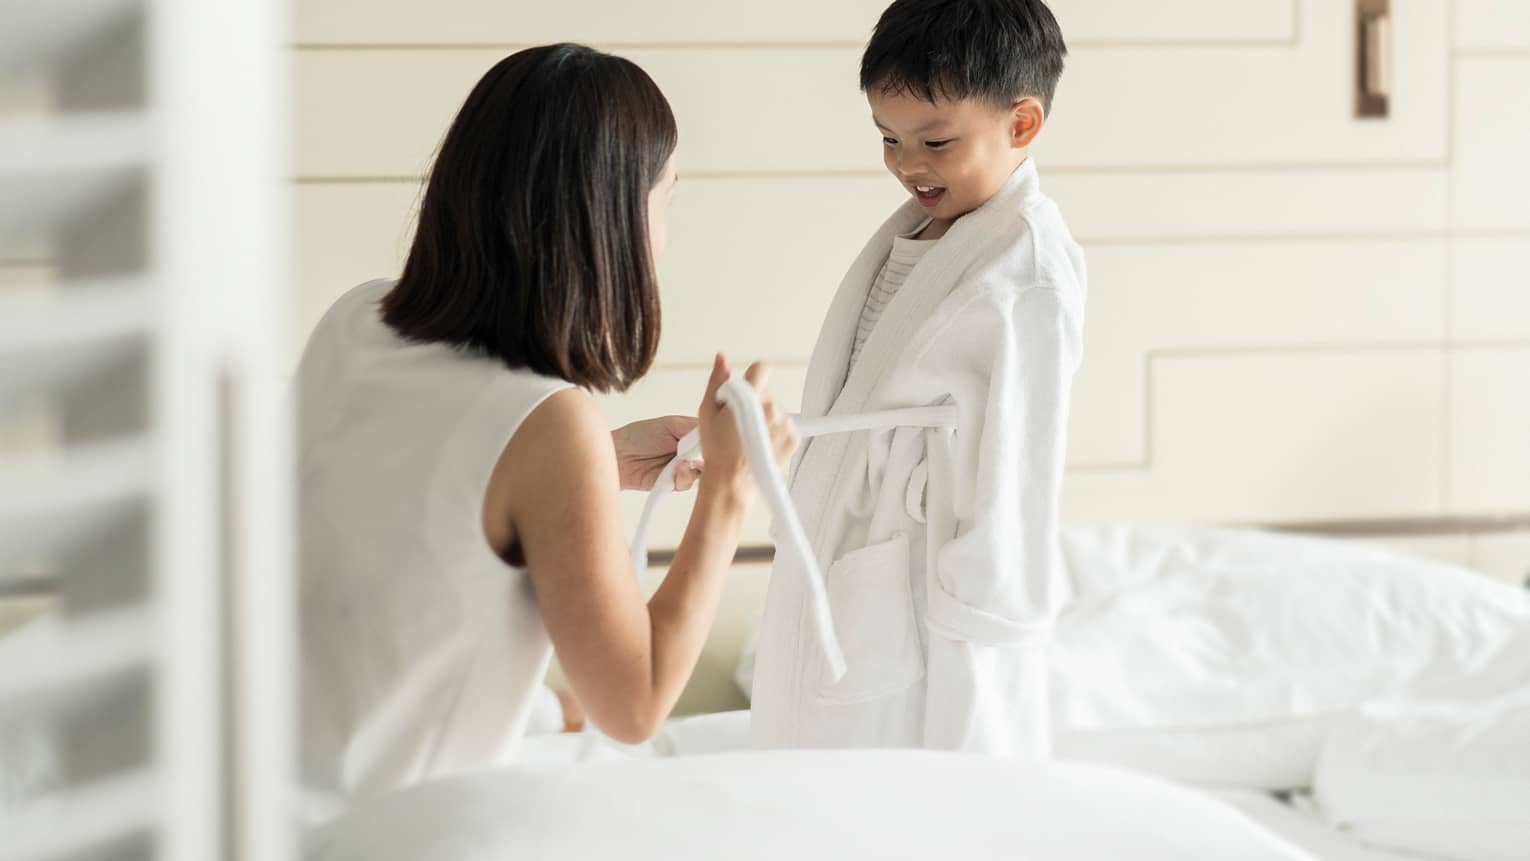 Woman kneels in front of young child, ties front of his white bathrobe